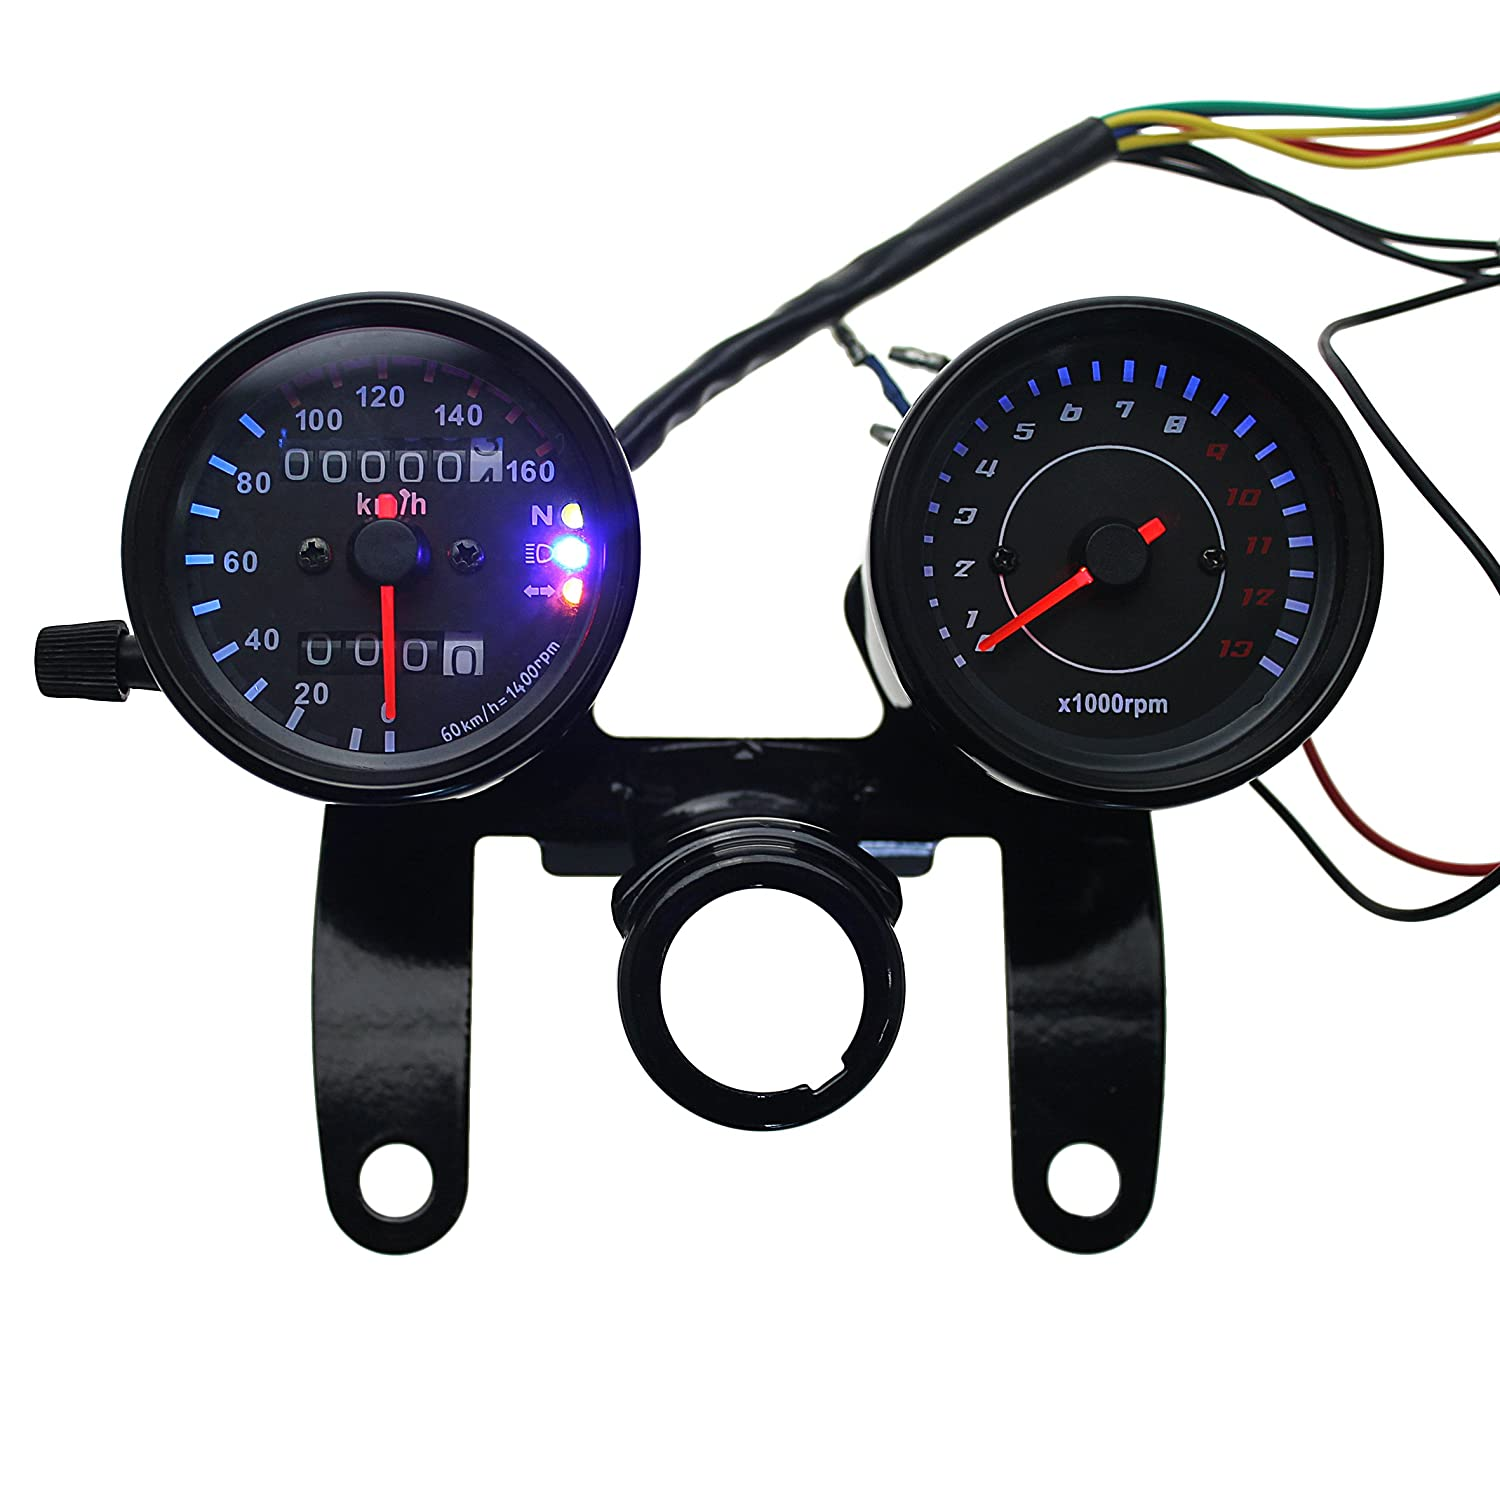 Iztoss 12v Motorcycle Scooter Black Led Odometer Suzuki 6 Volt Wiring Diagram Speedometer Gauge And 13000rpm Tachometer With Bracket For Yamaha Sr Xv Rx Cafe Racer